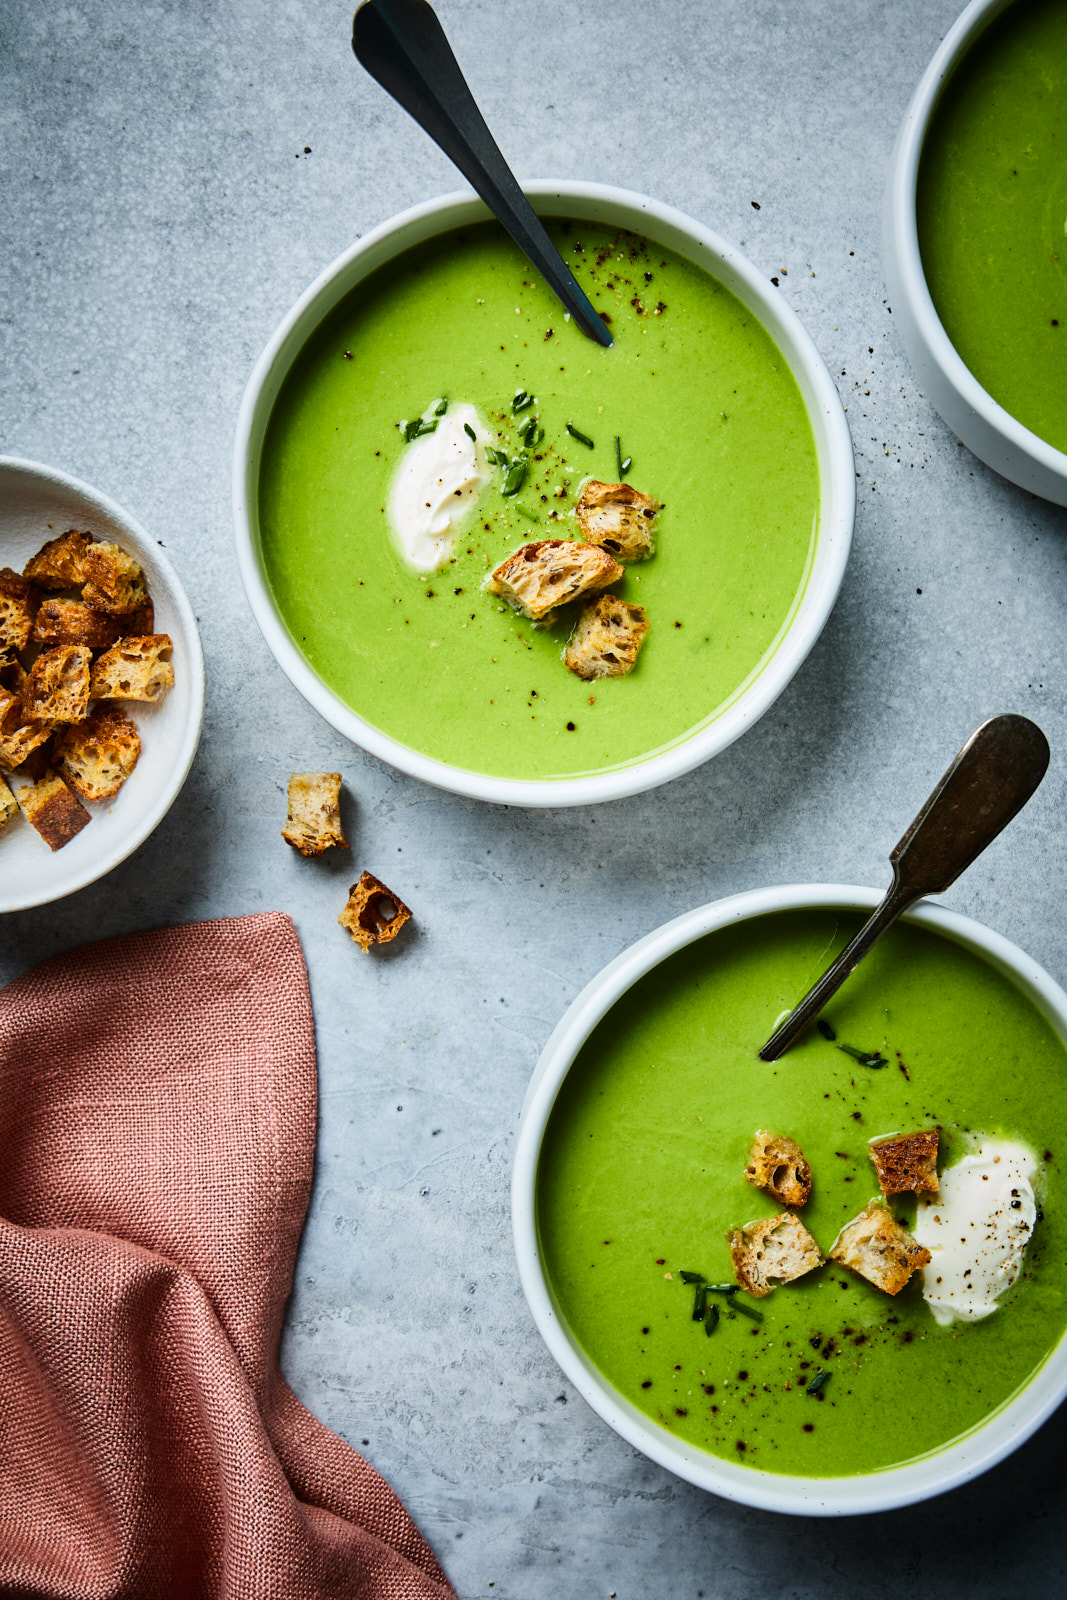 Fresh Pea Soup (Potage Saint-Germain)